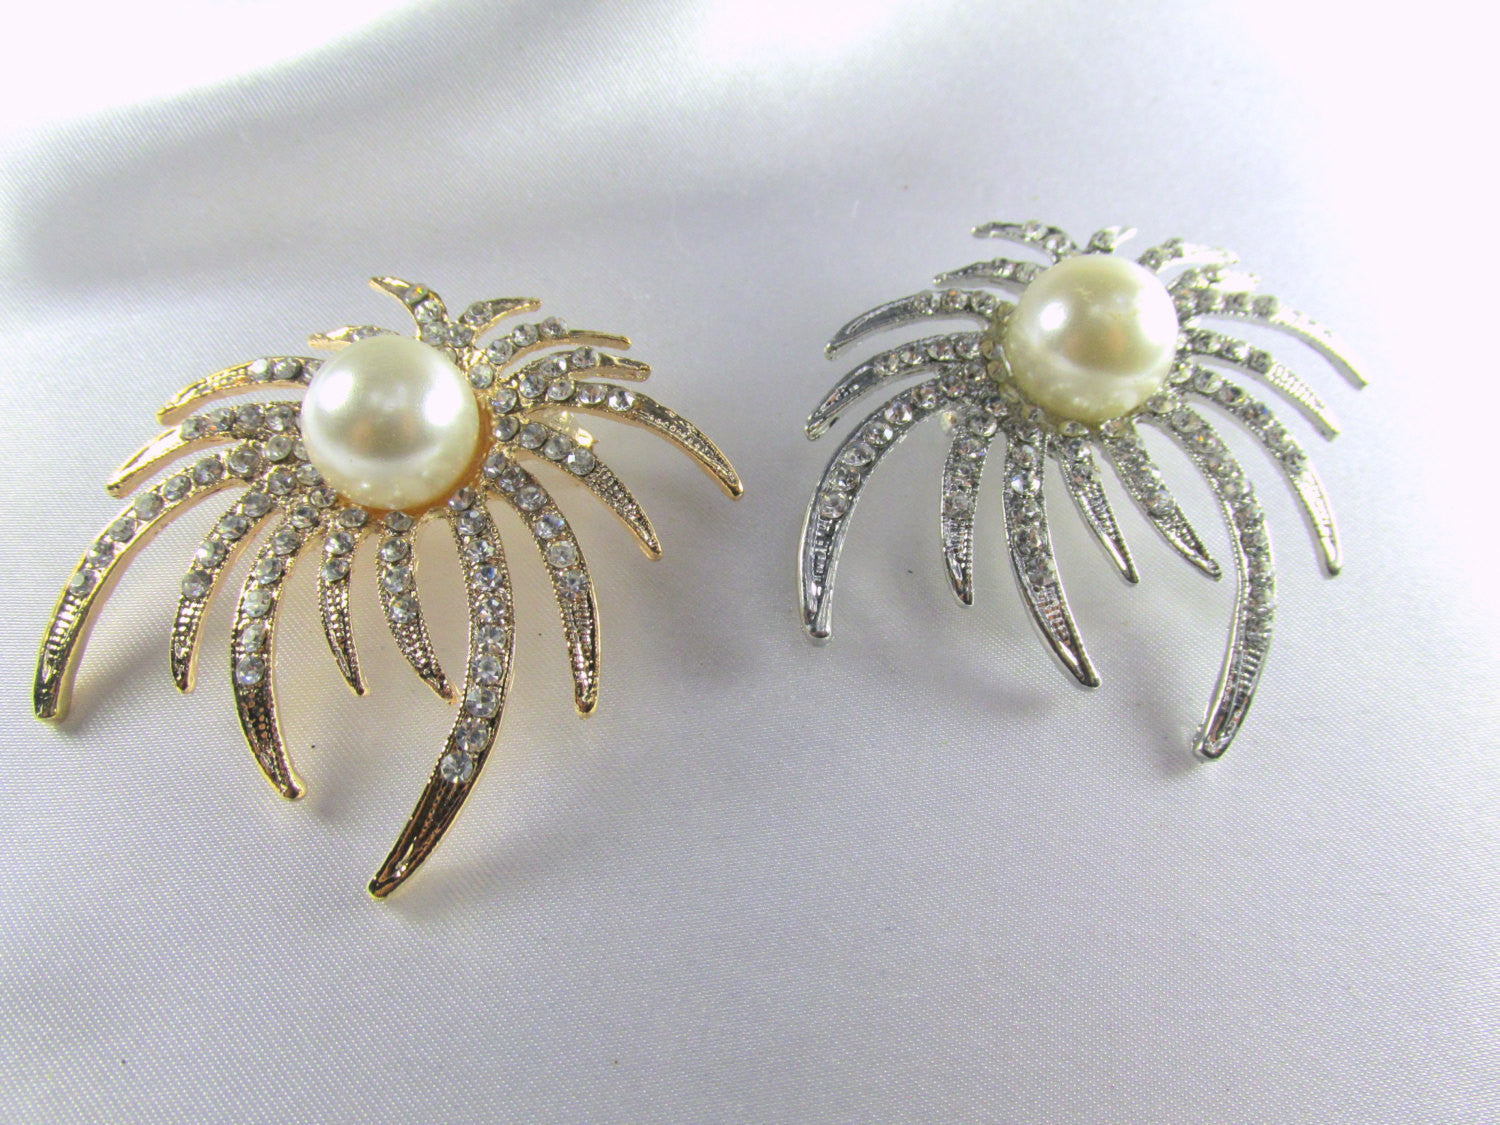 Silver Ivory White Pearl and Crystal Sunburst Brooch - Odyssey Cache - 4